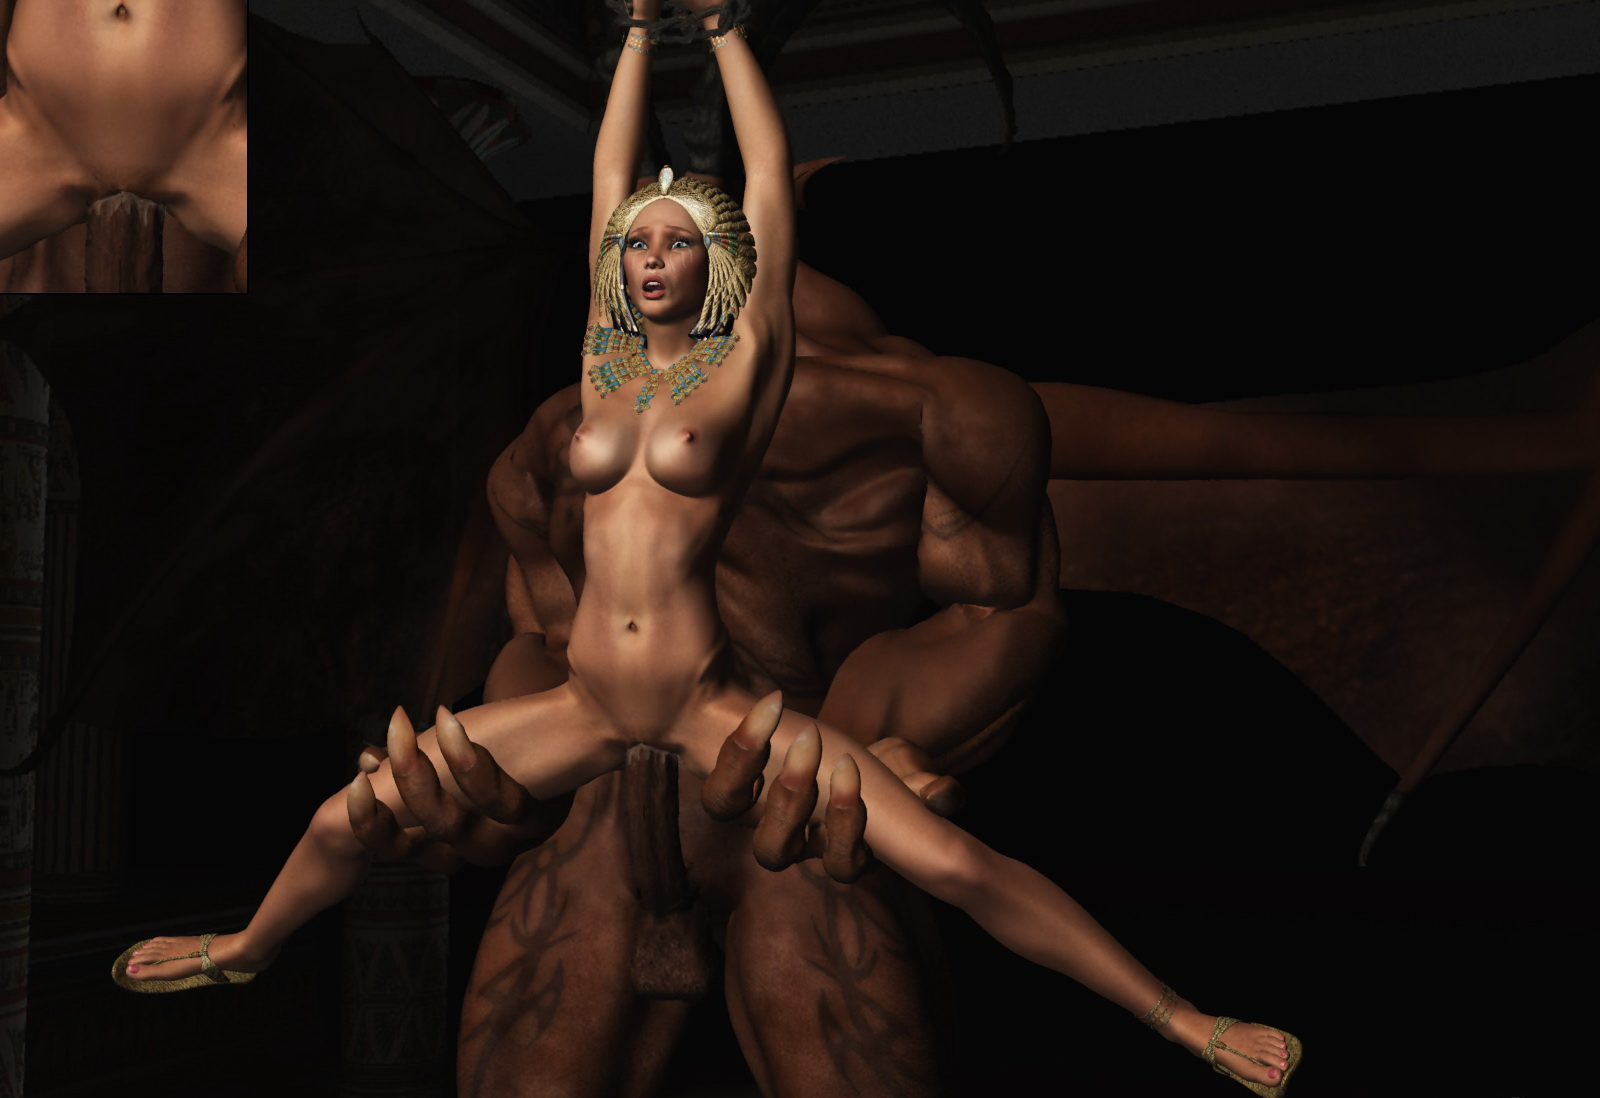 Nude 3d game female hero erotic videos